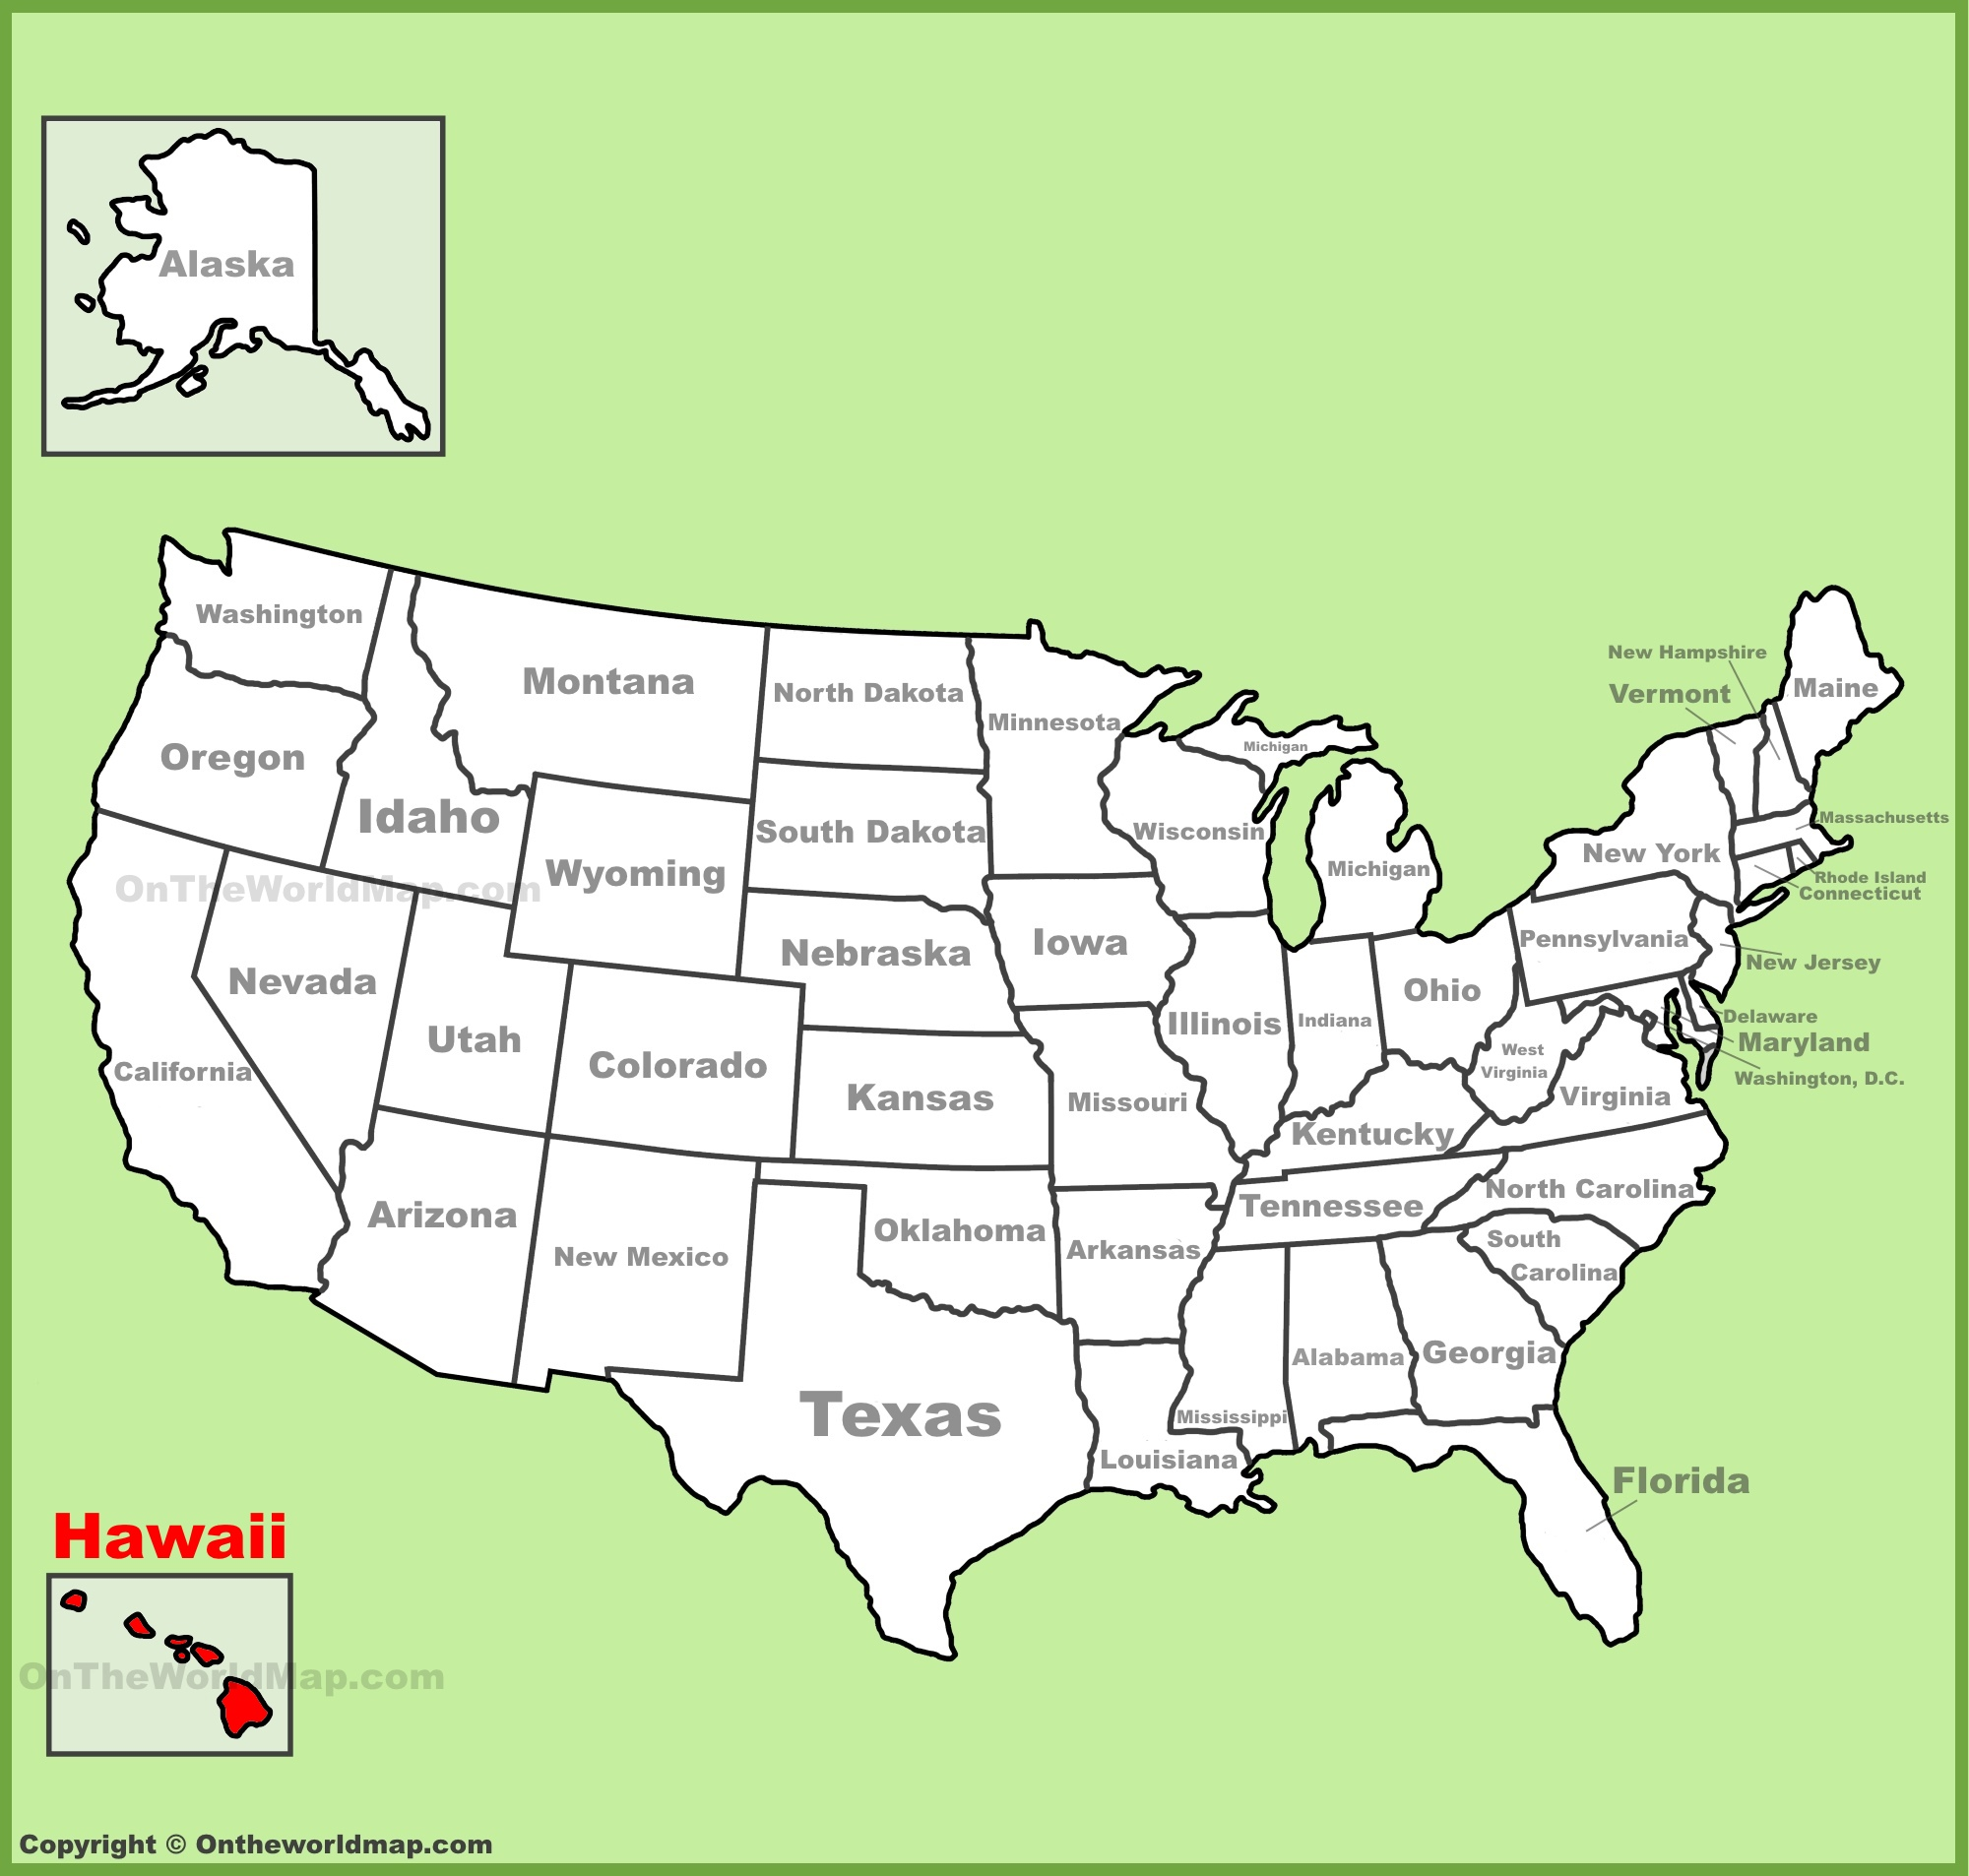 Hawaii State Maps | USA | Maps of Hawaii (Hawaiian Islands)